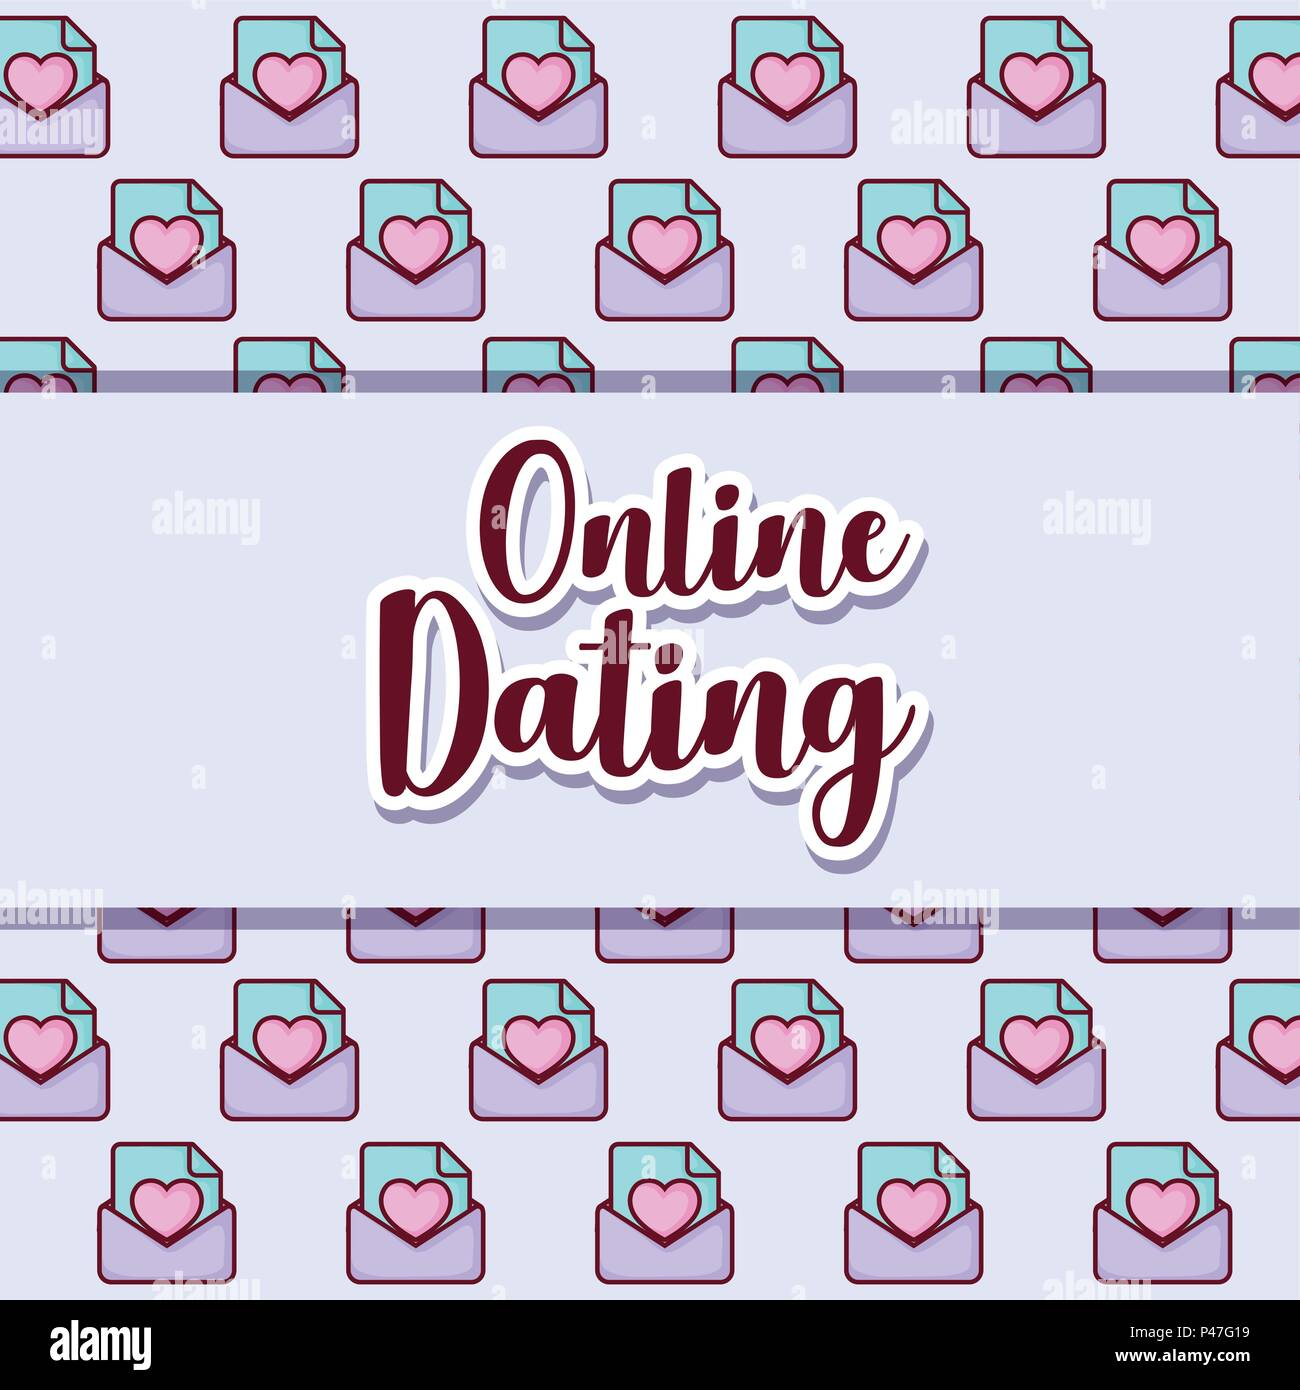 dating sites for university graduates